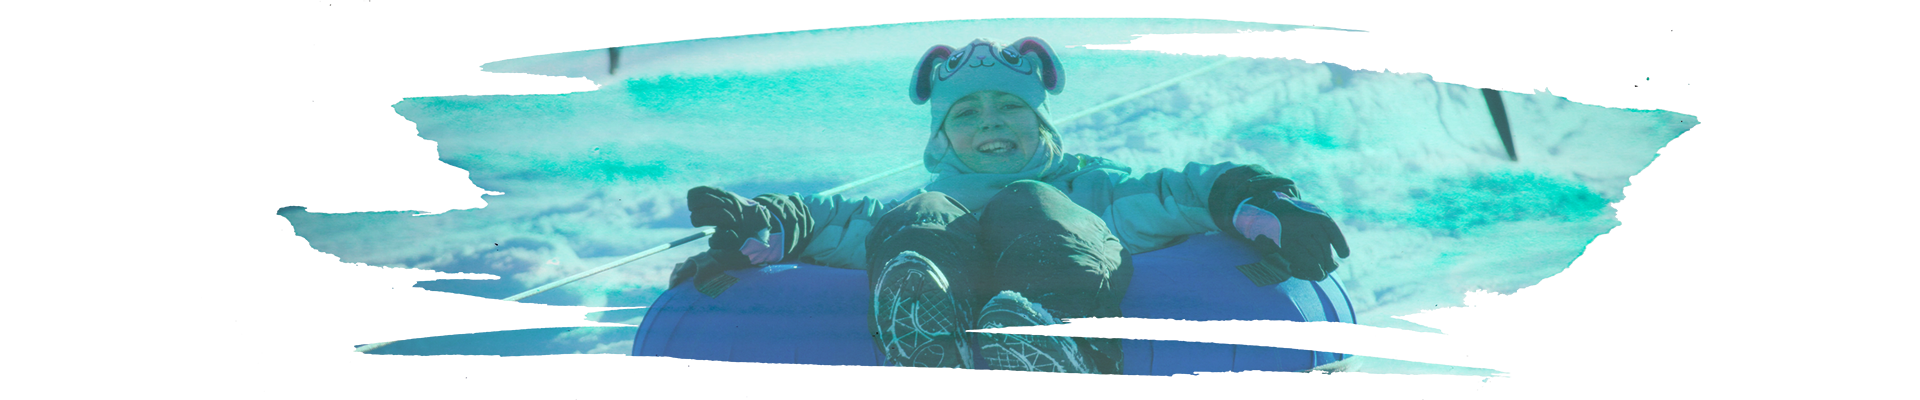 Top 10 places to go sledding in Michigan this winter - Hanson Hills Recreational Area